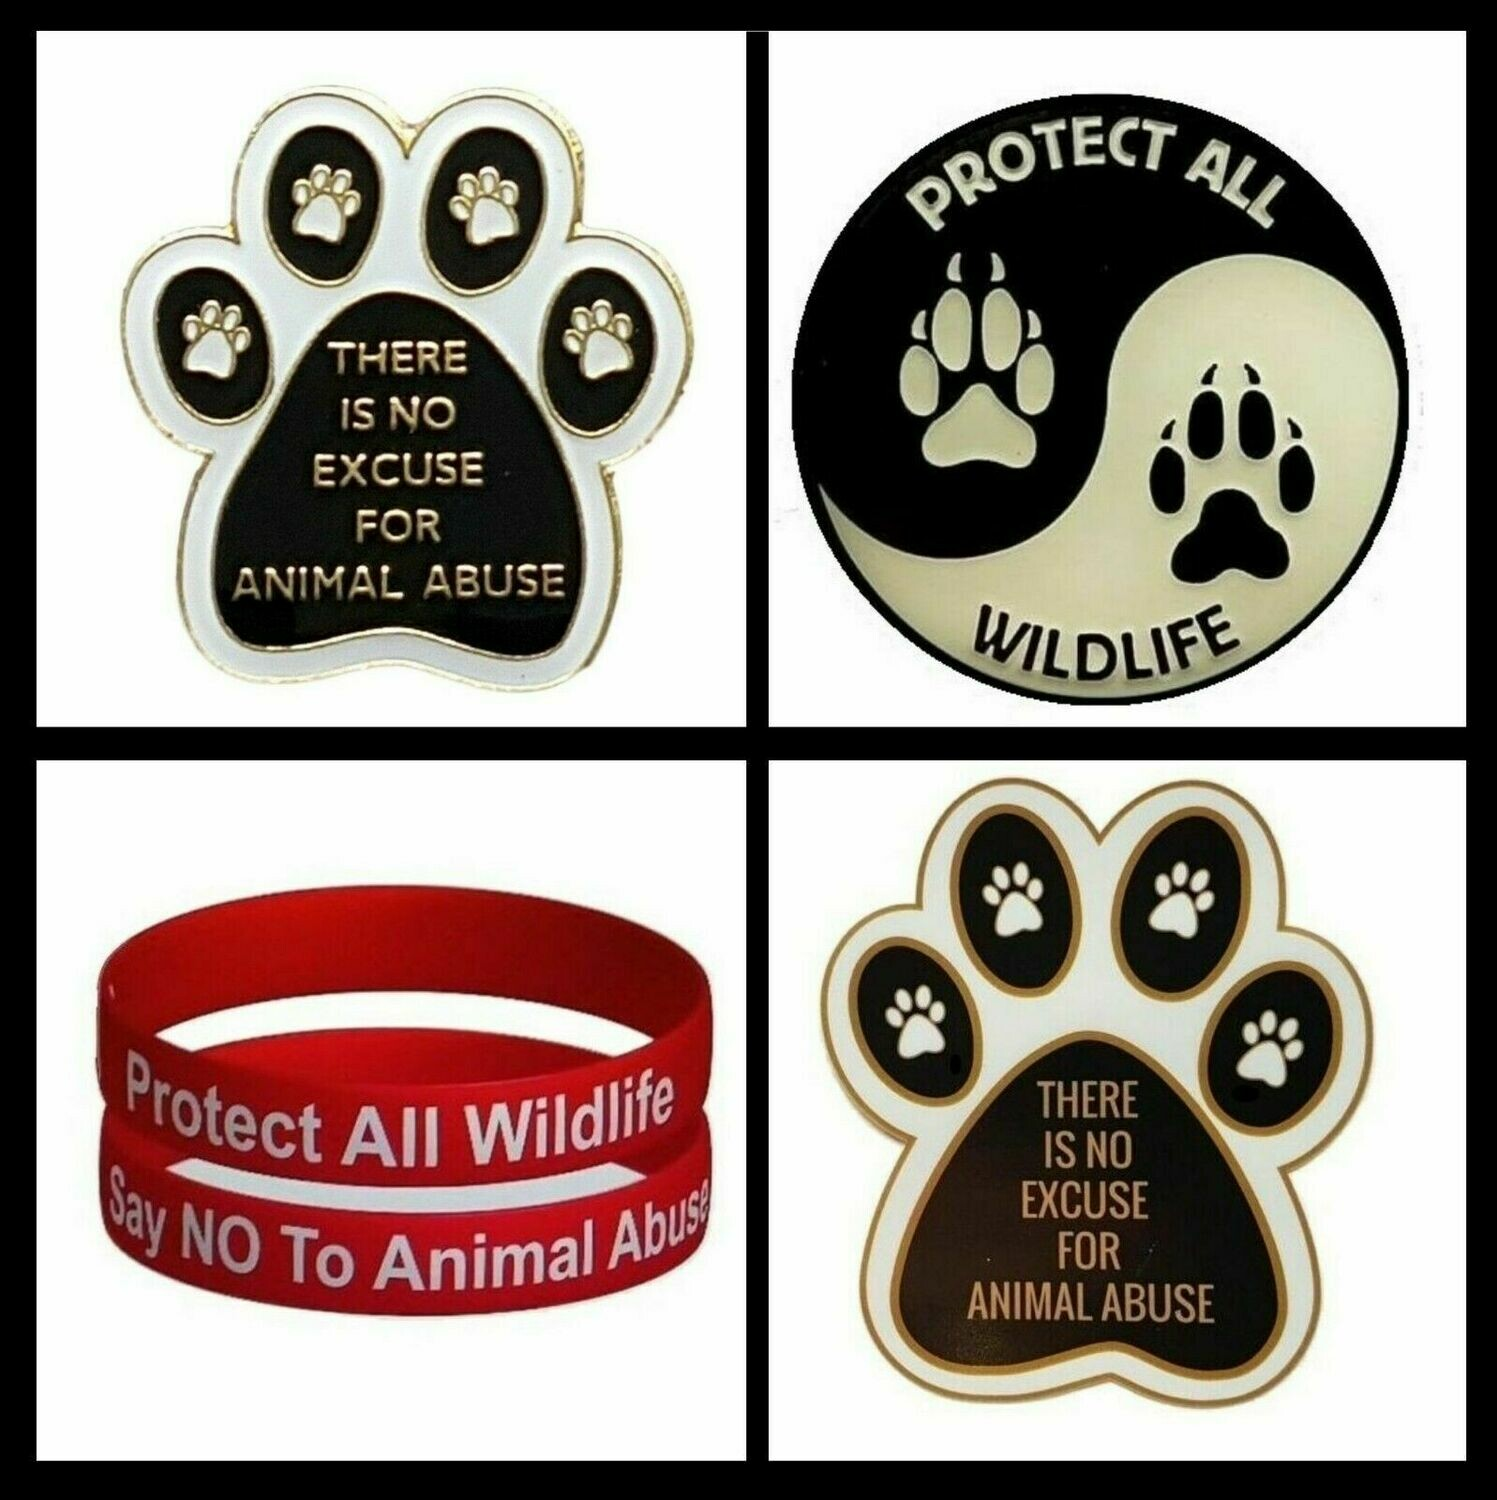 PROTECT ALL WILDLIFE CONSERVATION PACK (BADGES, CAR STICKER & WRISTBAND)